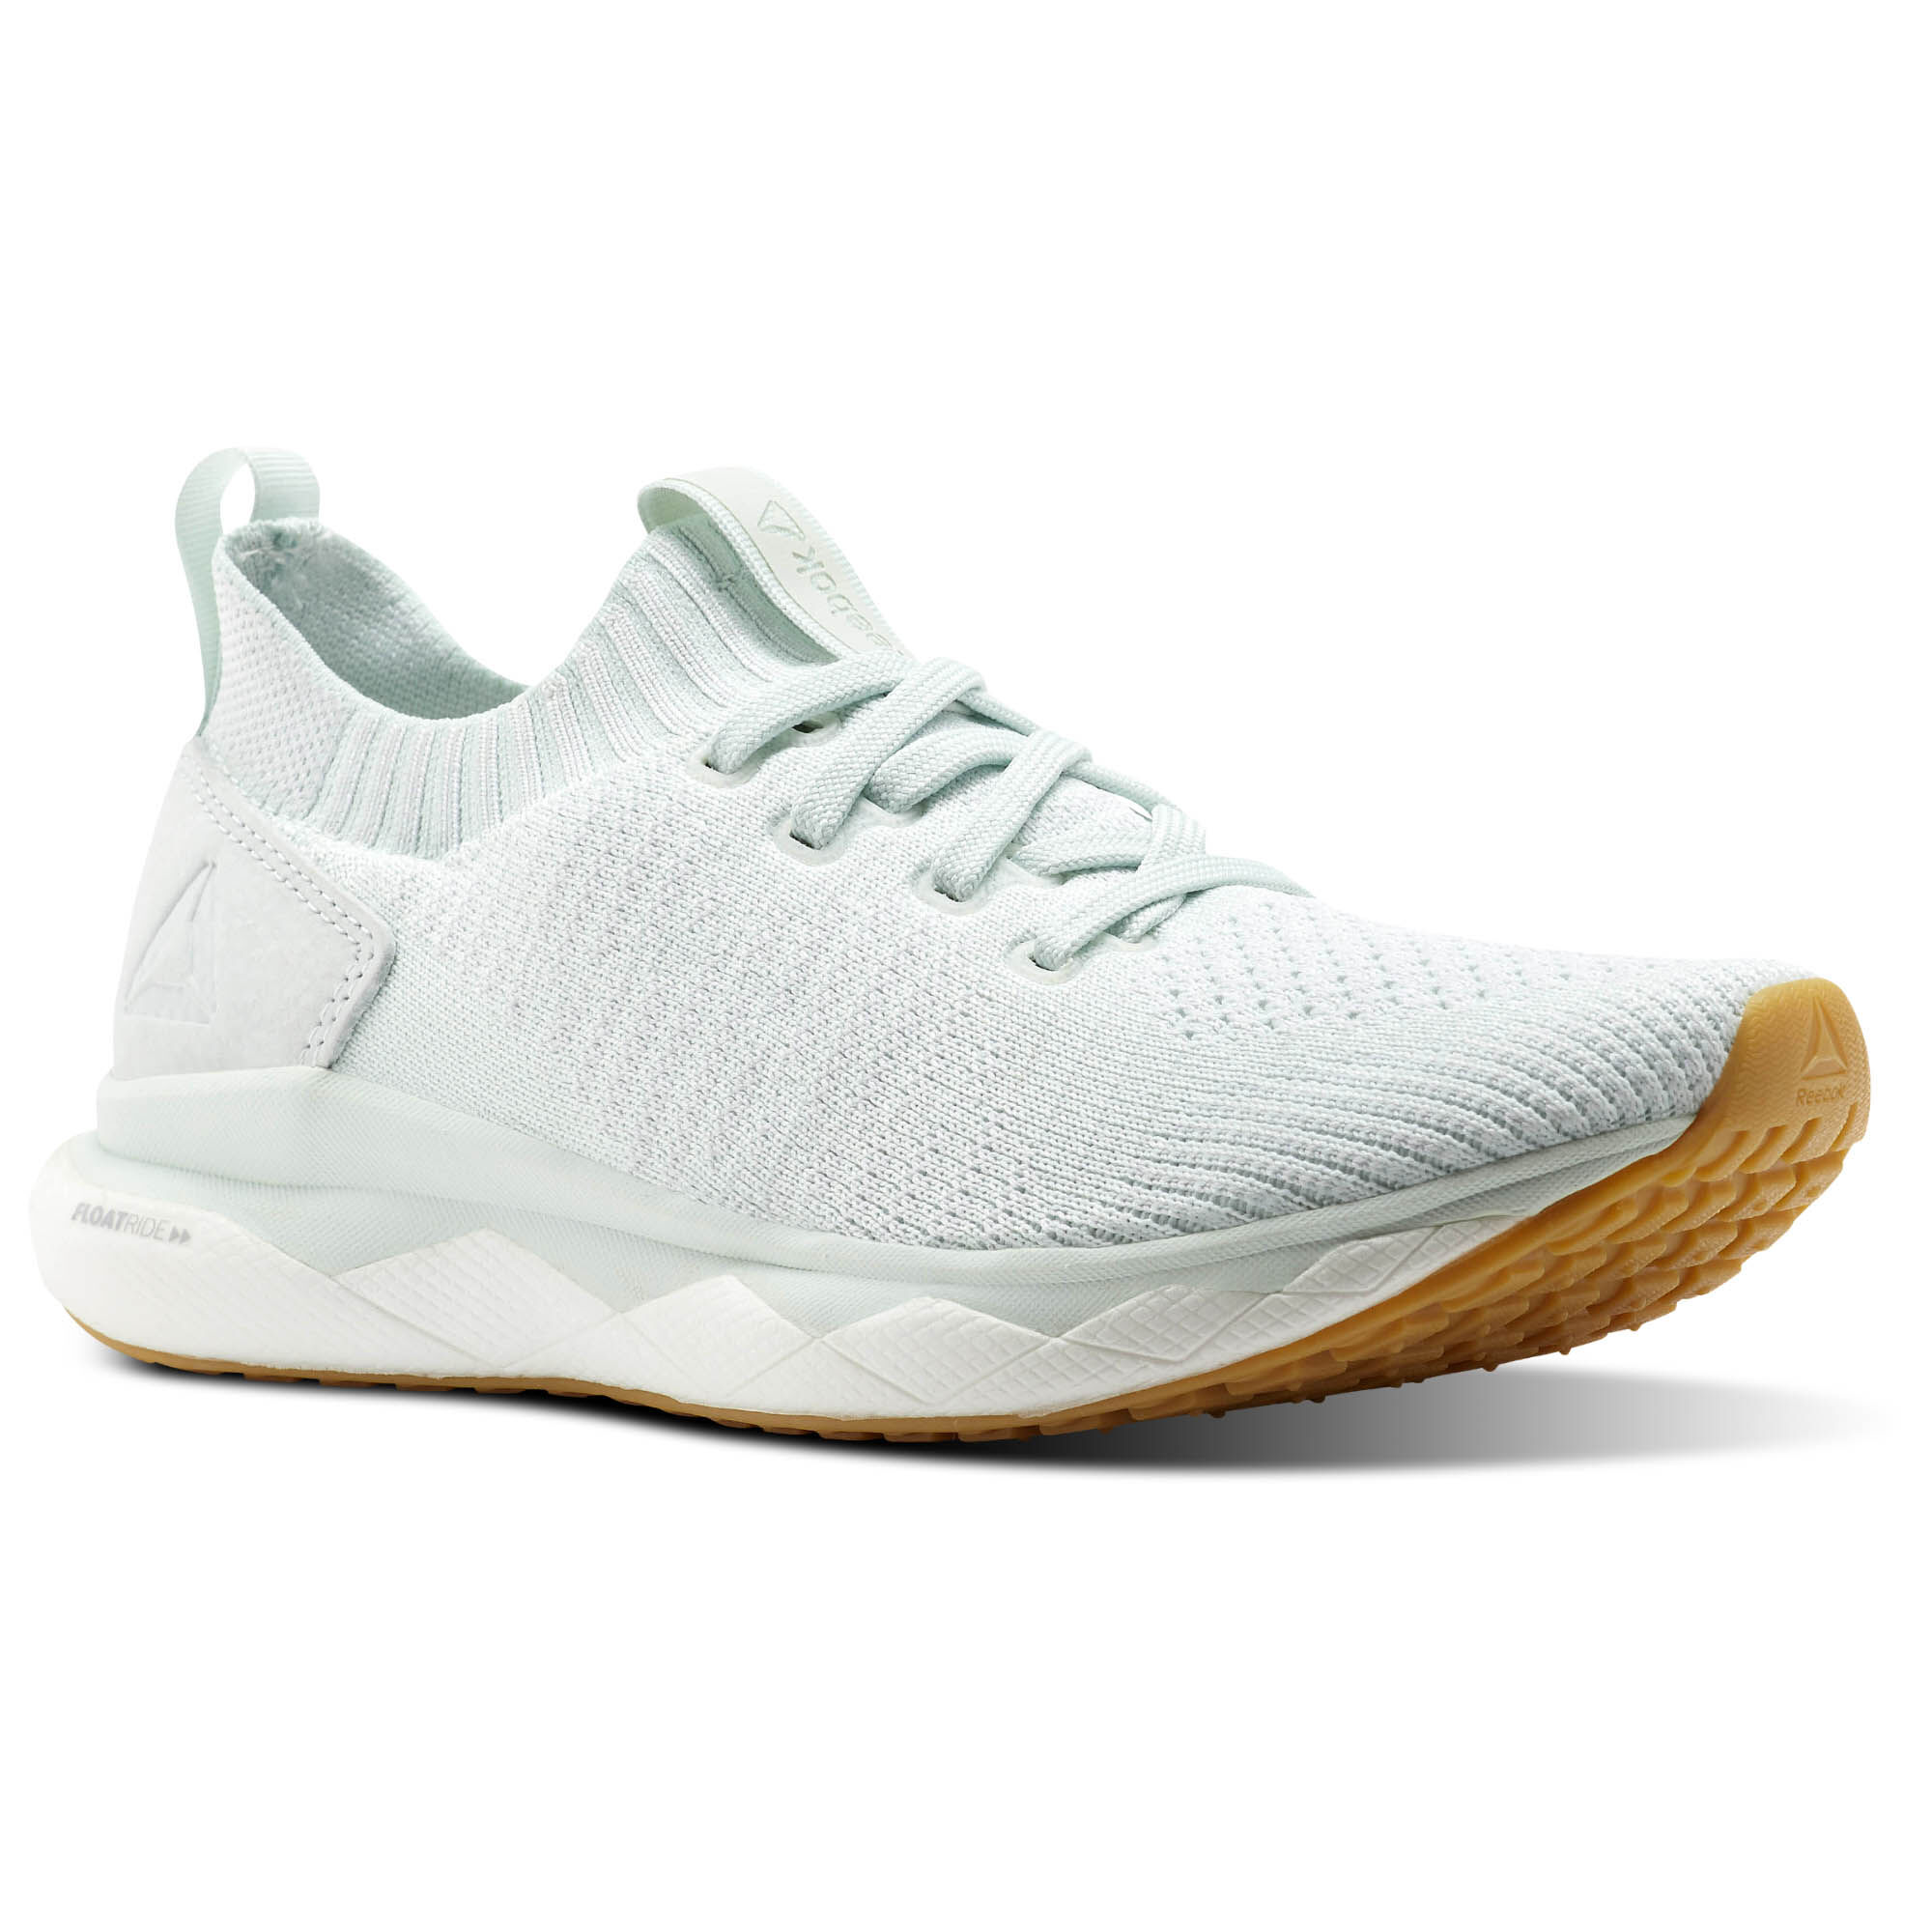 floatride rs run sneakers Reebok Discount Outlet Free Shipping Best Store To Get NHTqKaFs